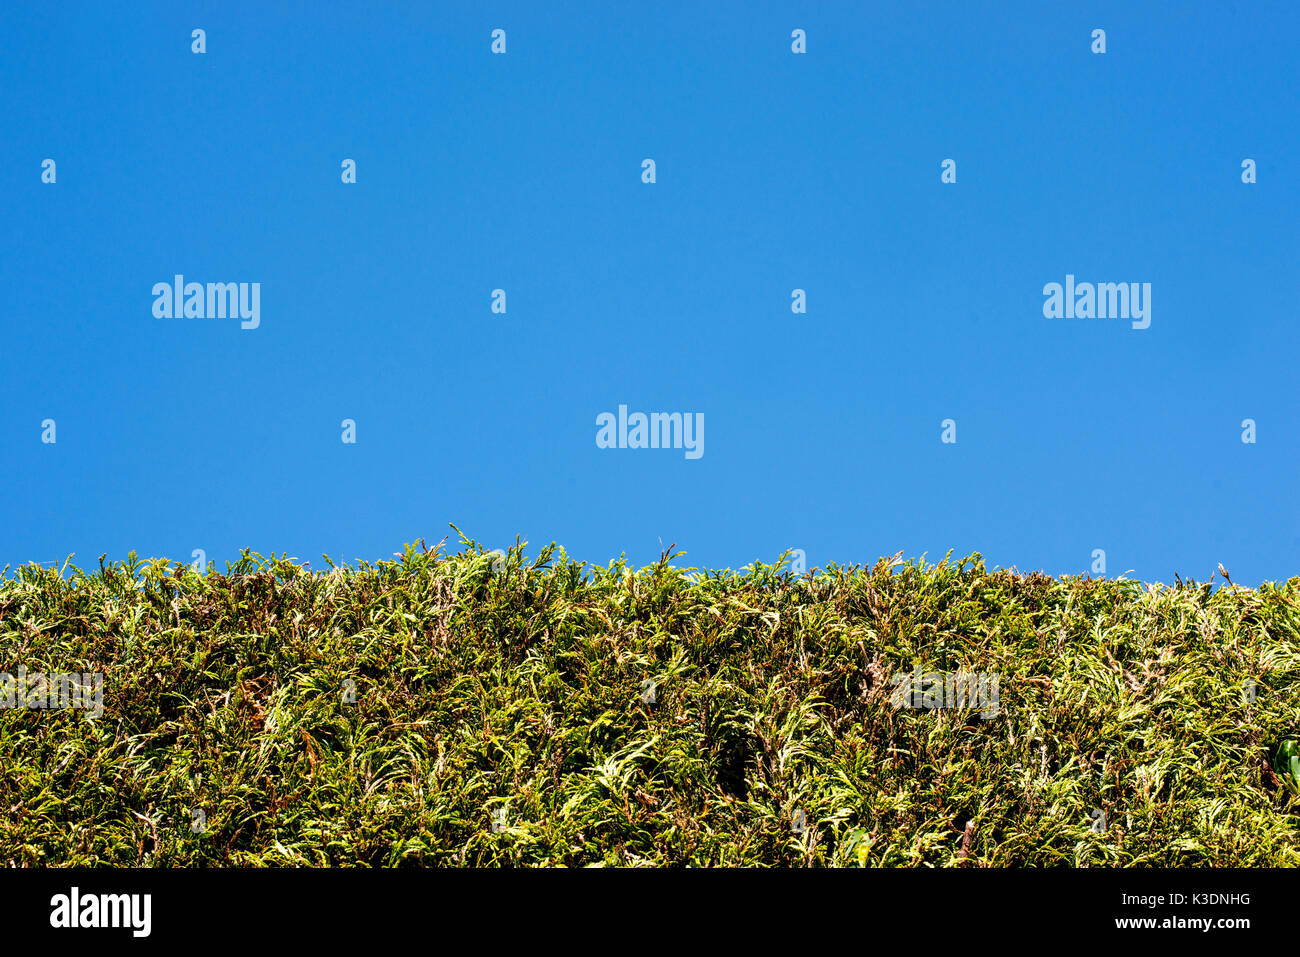 Green Conifer Hedge TOp Against A Clear Blue Summer Sky - Stock Image